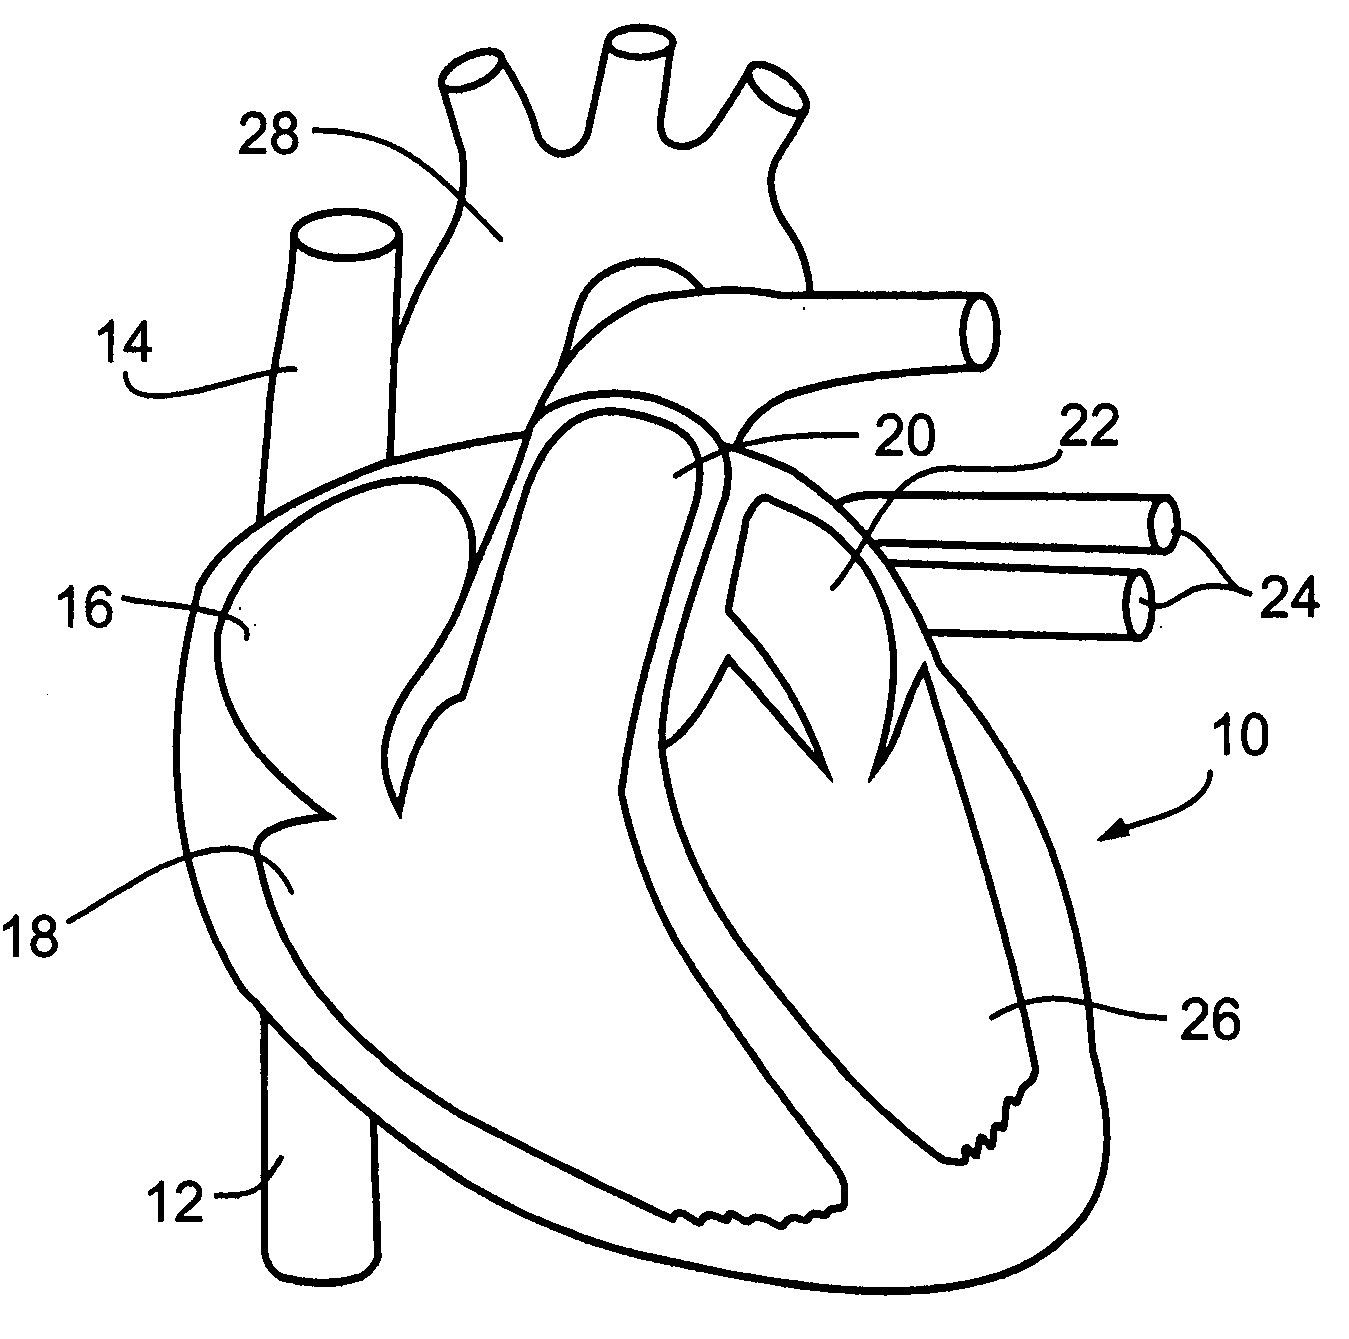 Circulatory System Coloring Pages Page 1 - Coloring Home